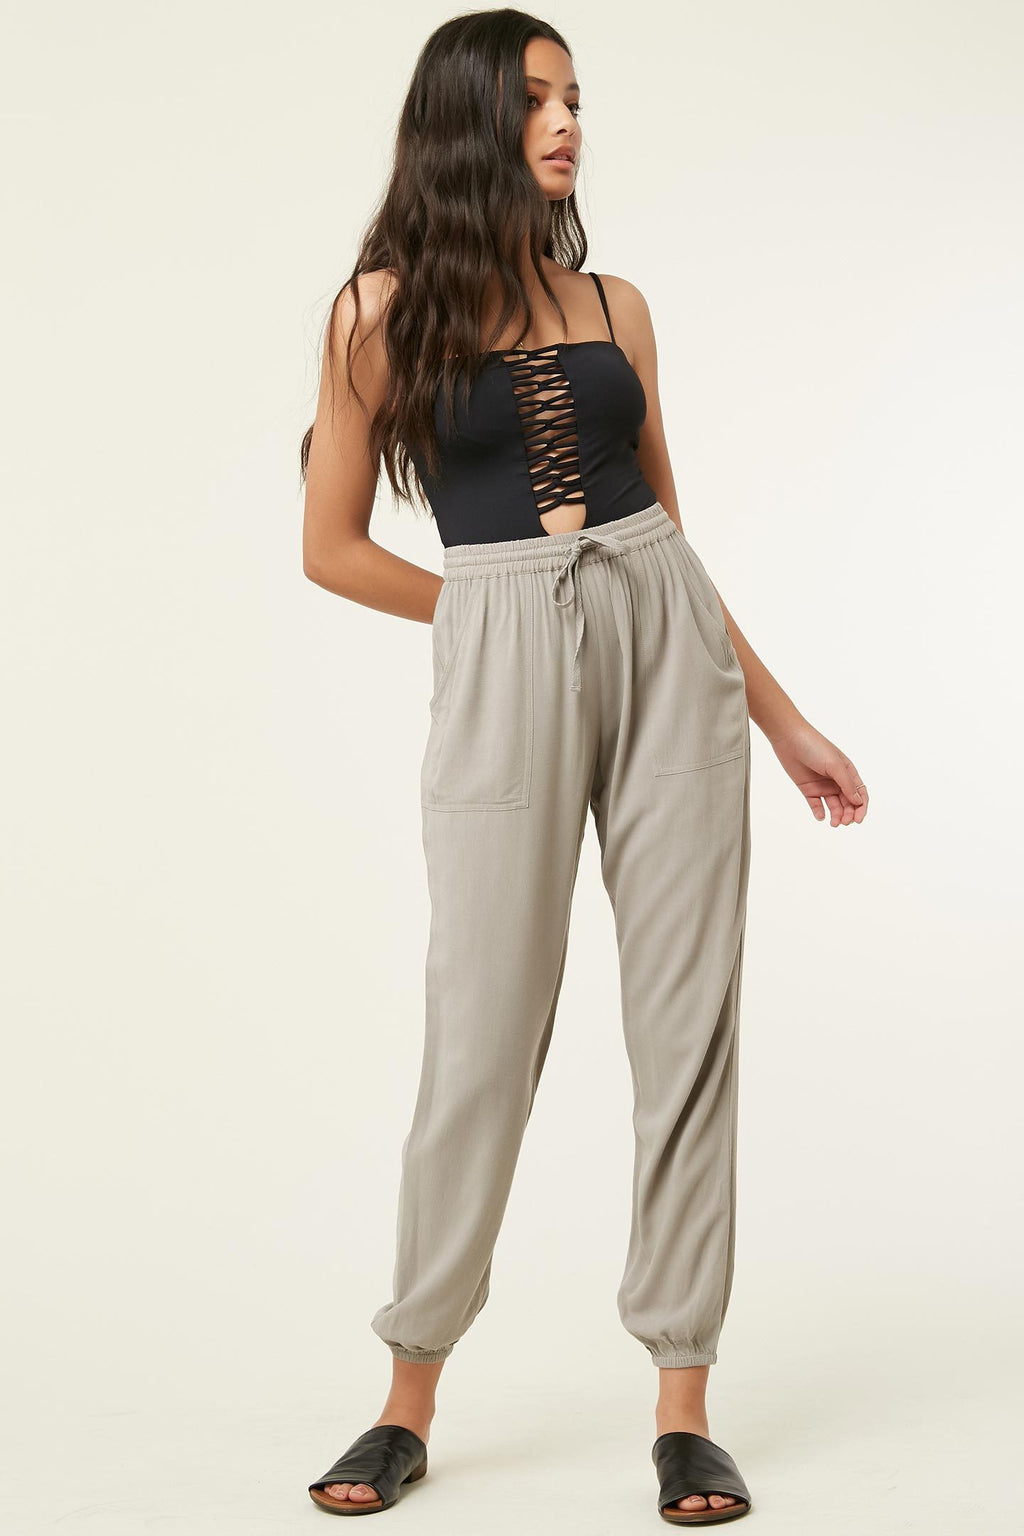 Fern Pant (GRY) ONLINE EXCLUSIVE